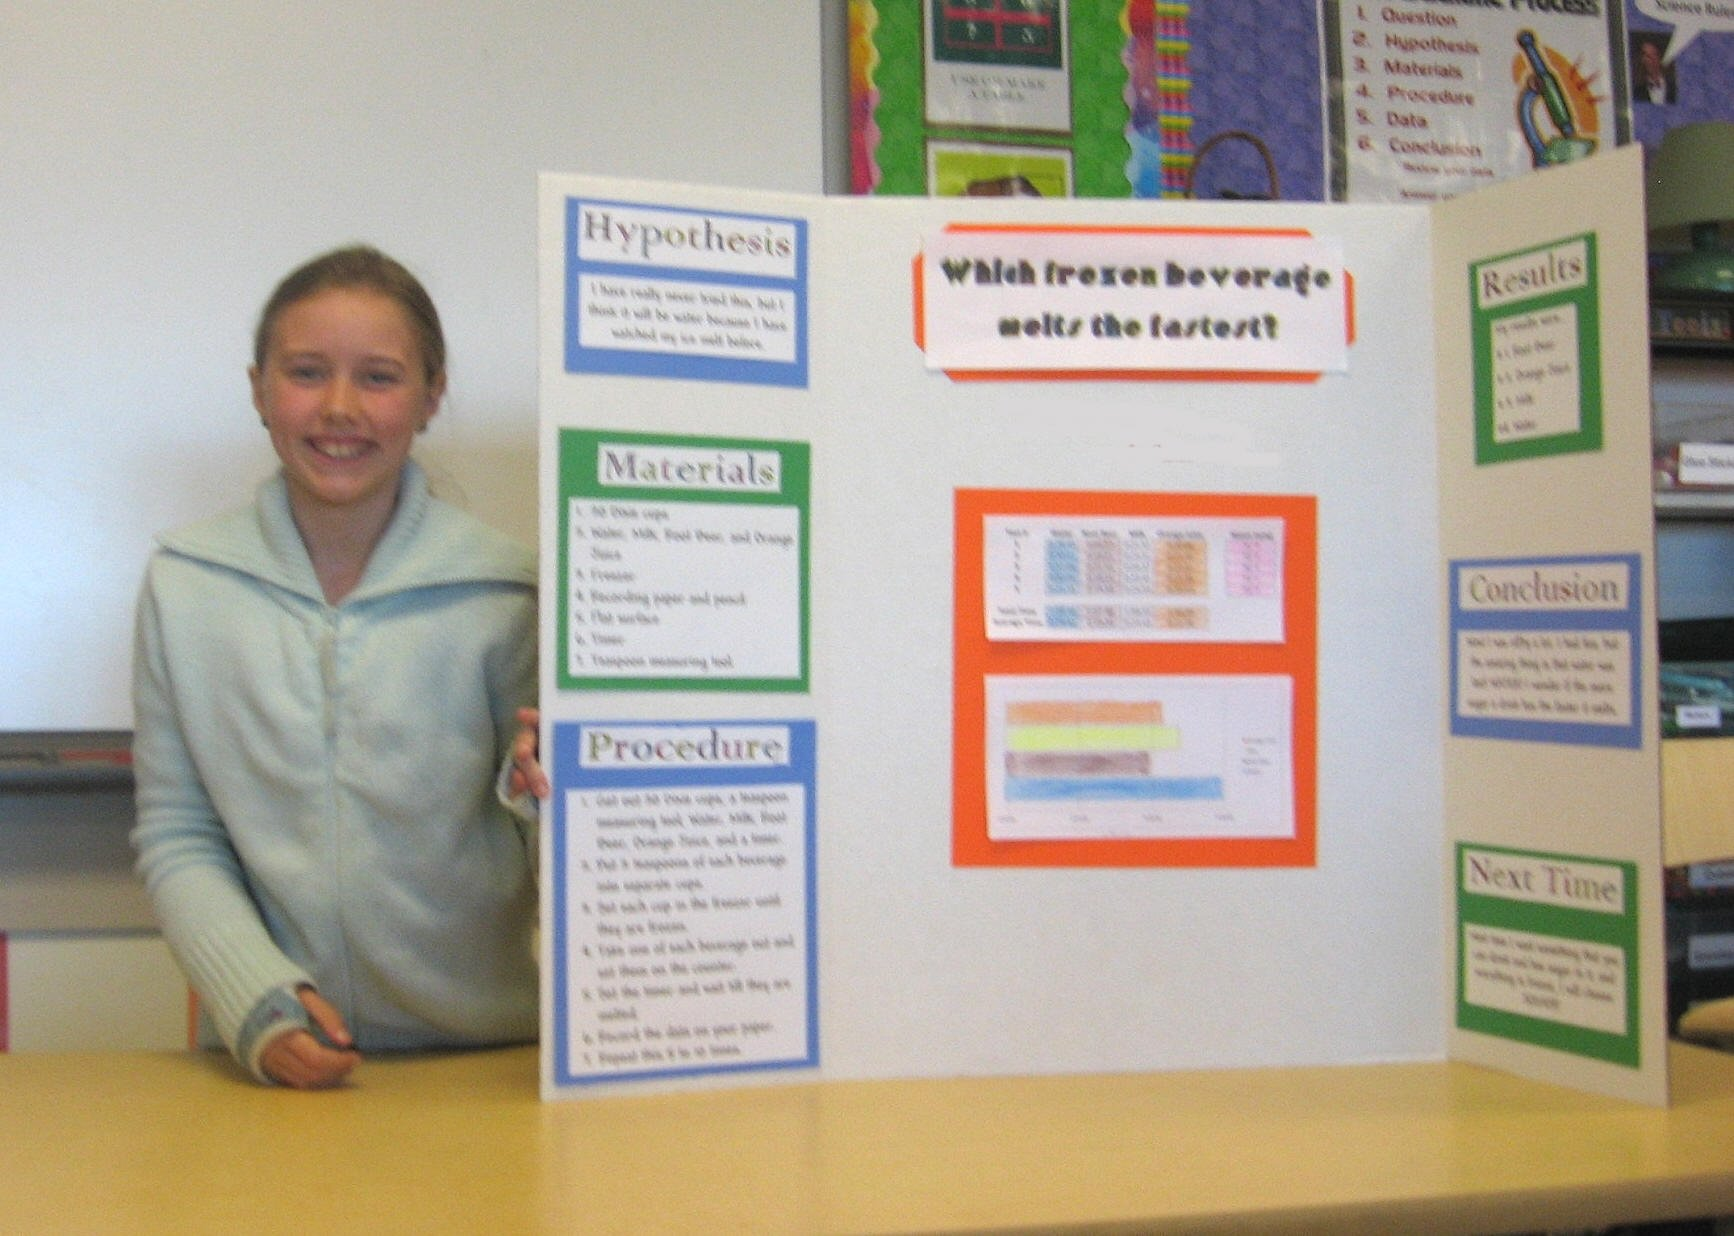 10 Famous Science Fair Projects Ideas For 4Th Graders great science fair project ideaswhich popsicle melts the fastest 2